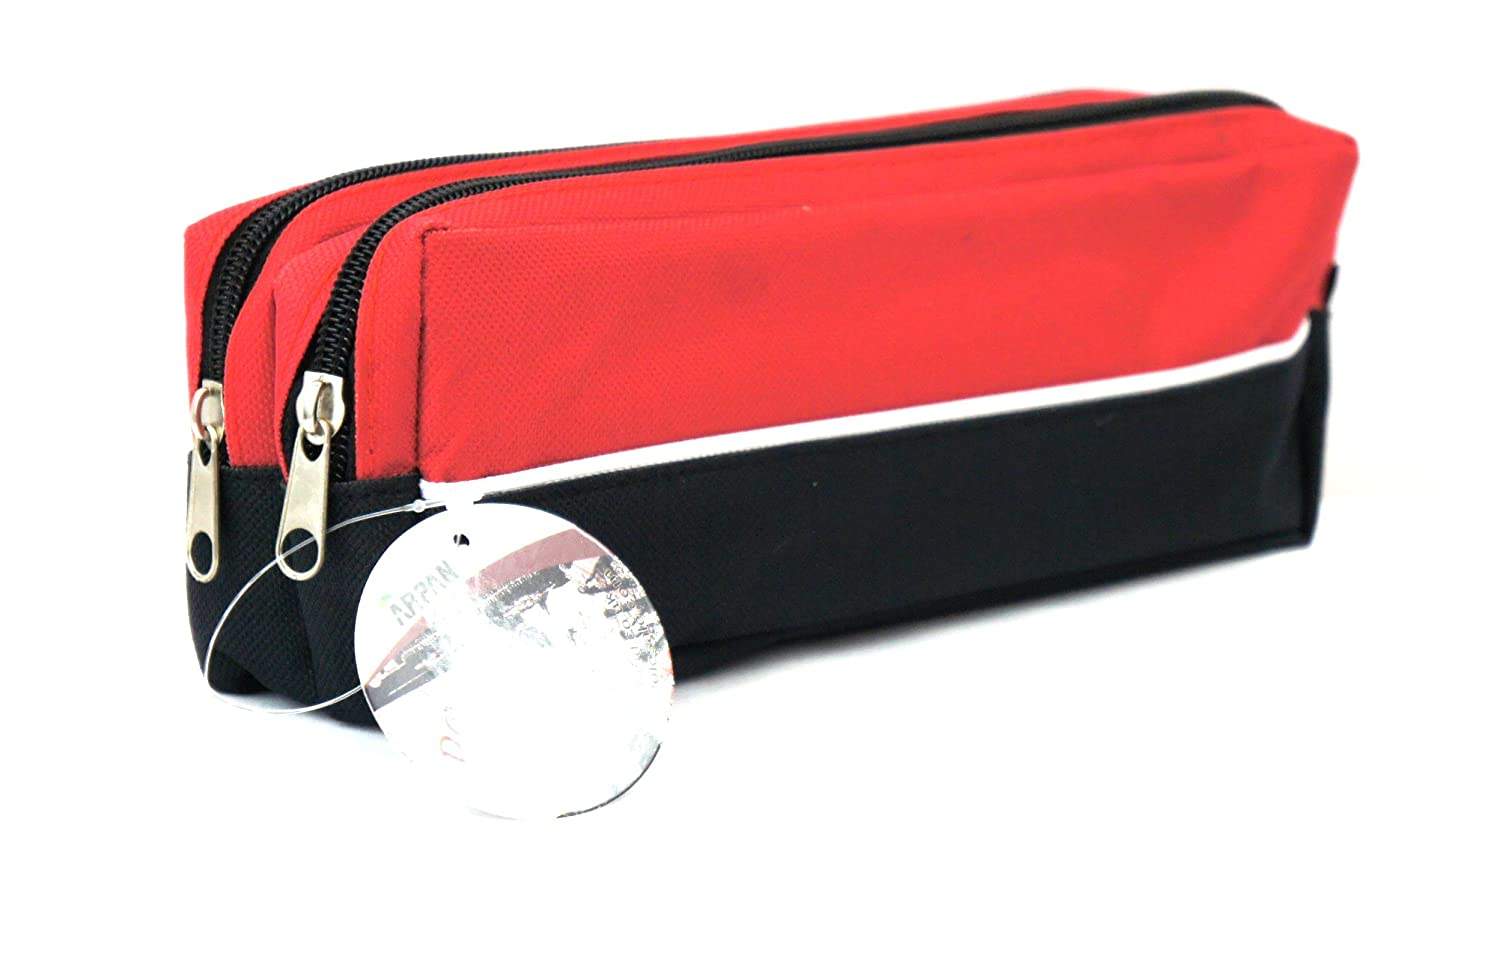 Arpan X-Large size Double Zip Fabric Pencil Case - Ideal For School/College/Uni.- Make Up -x 1 (BLACK)